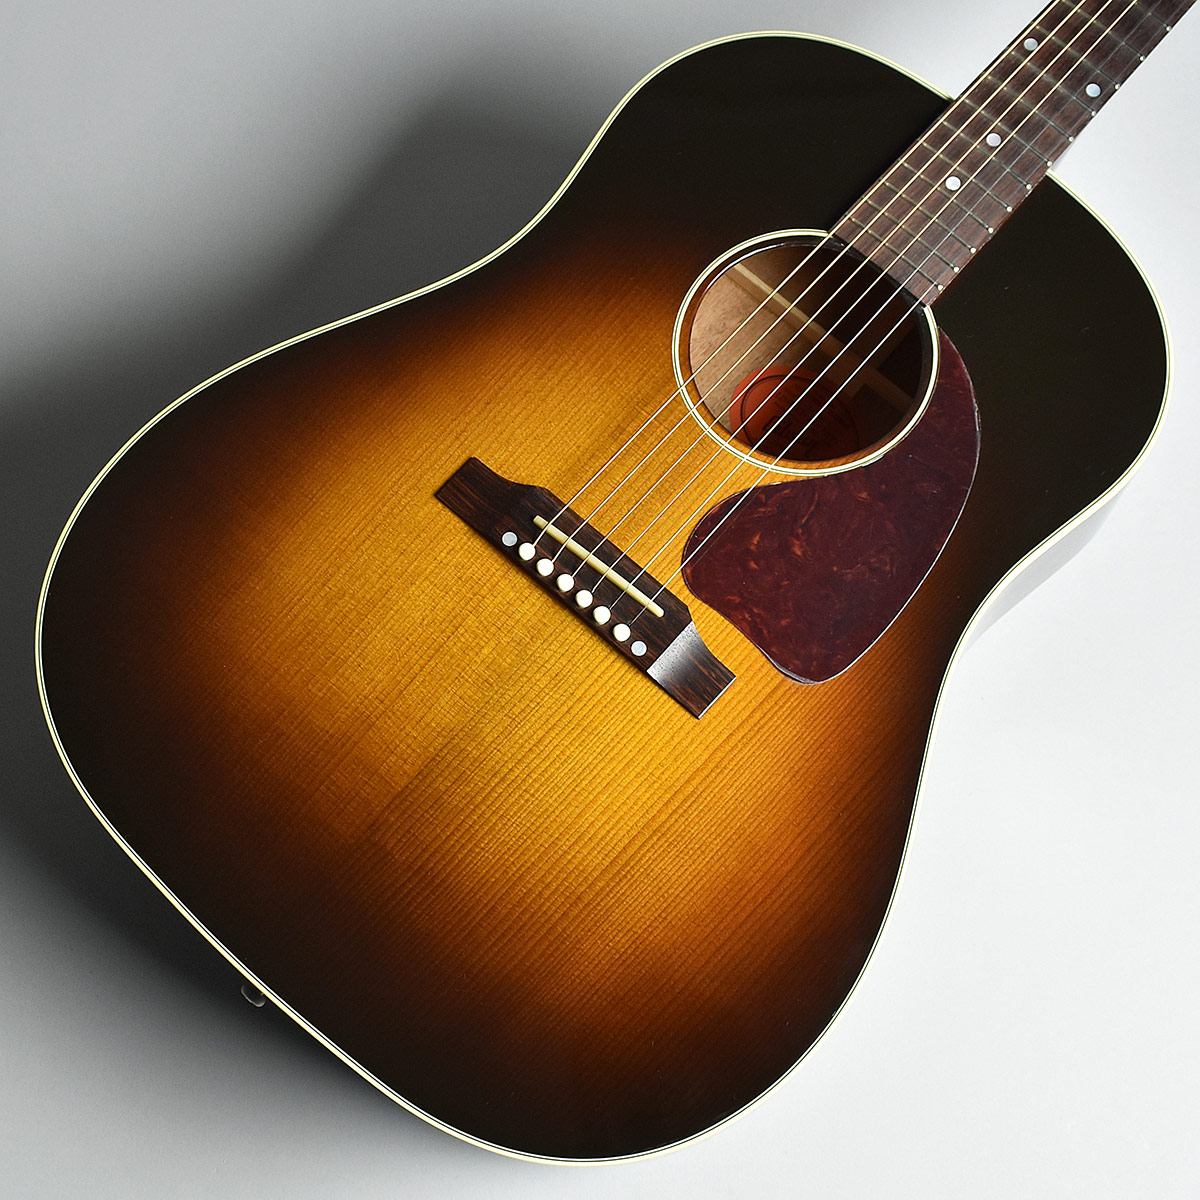 Gibson J-45 New Vintage Ultimate 2016 Limited Vintage Sunburst S/N:1196052 【限定モデル】 【ギブソン J45】